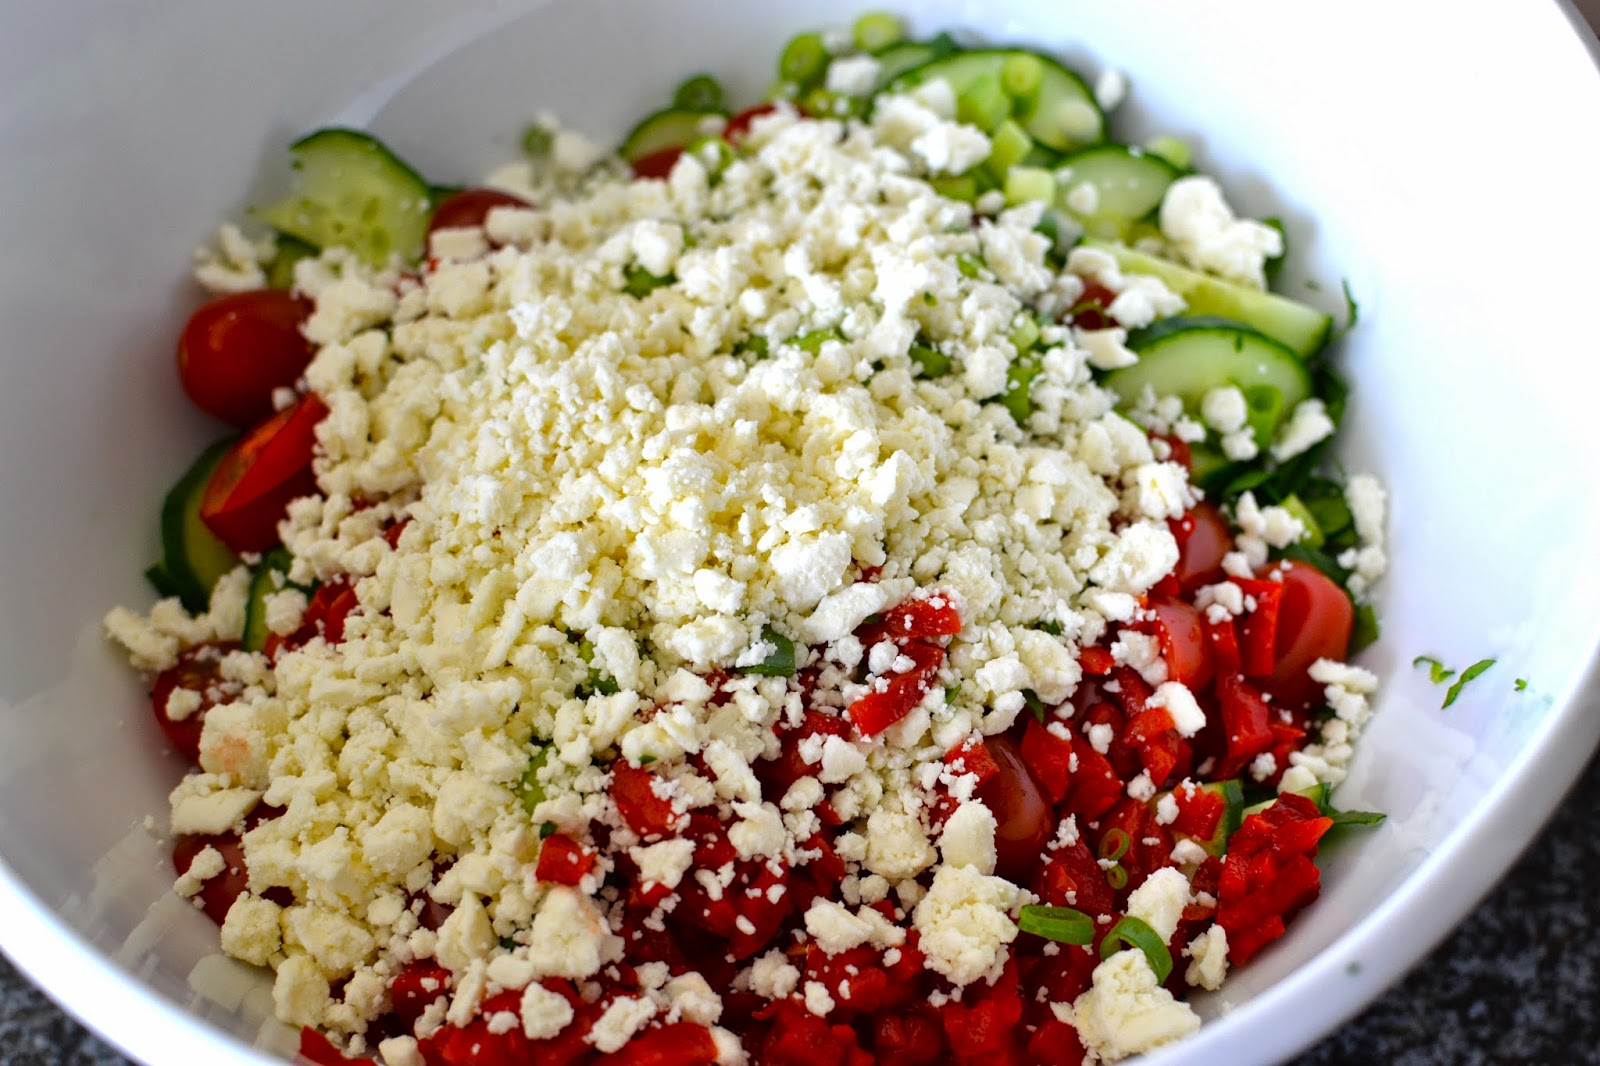 Feta Cheese, Cucumbers, Roasted Red Peppers, Tomatoes, Onion